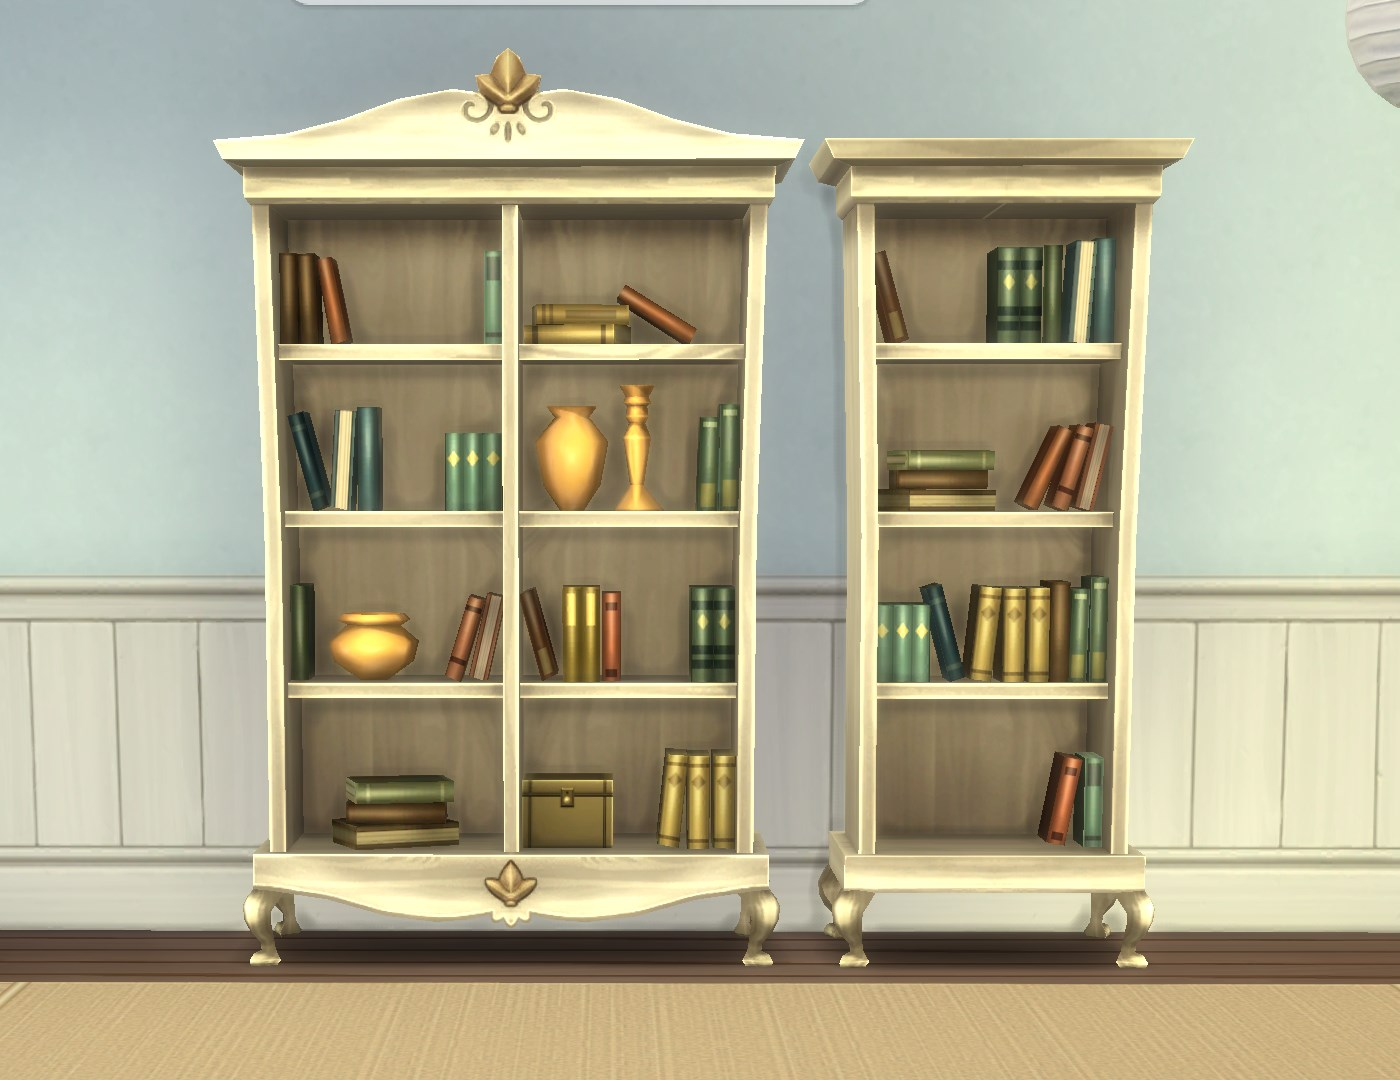 Wonderful image of Mod The Sims Single Tile Cordelia Bookcases with #966D35 color and 1400x1080 pixels